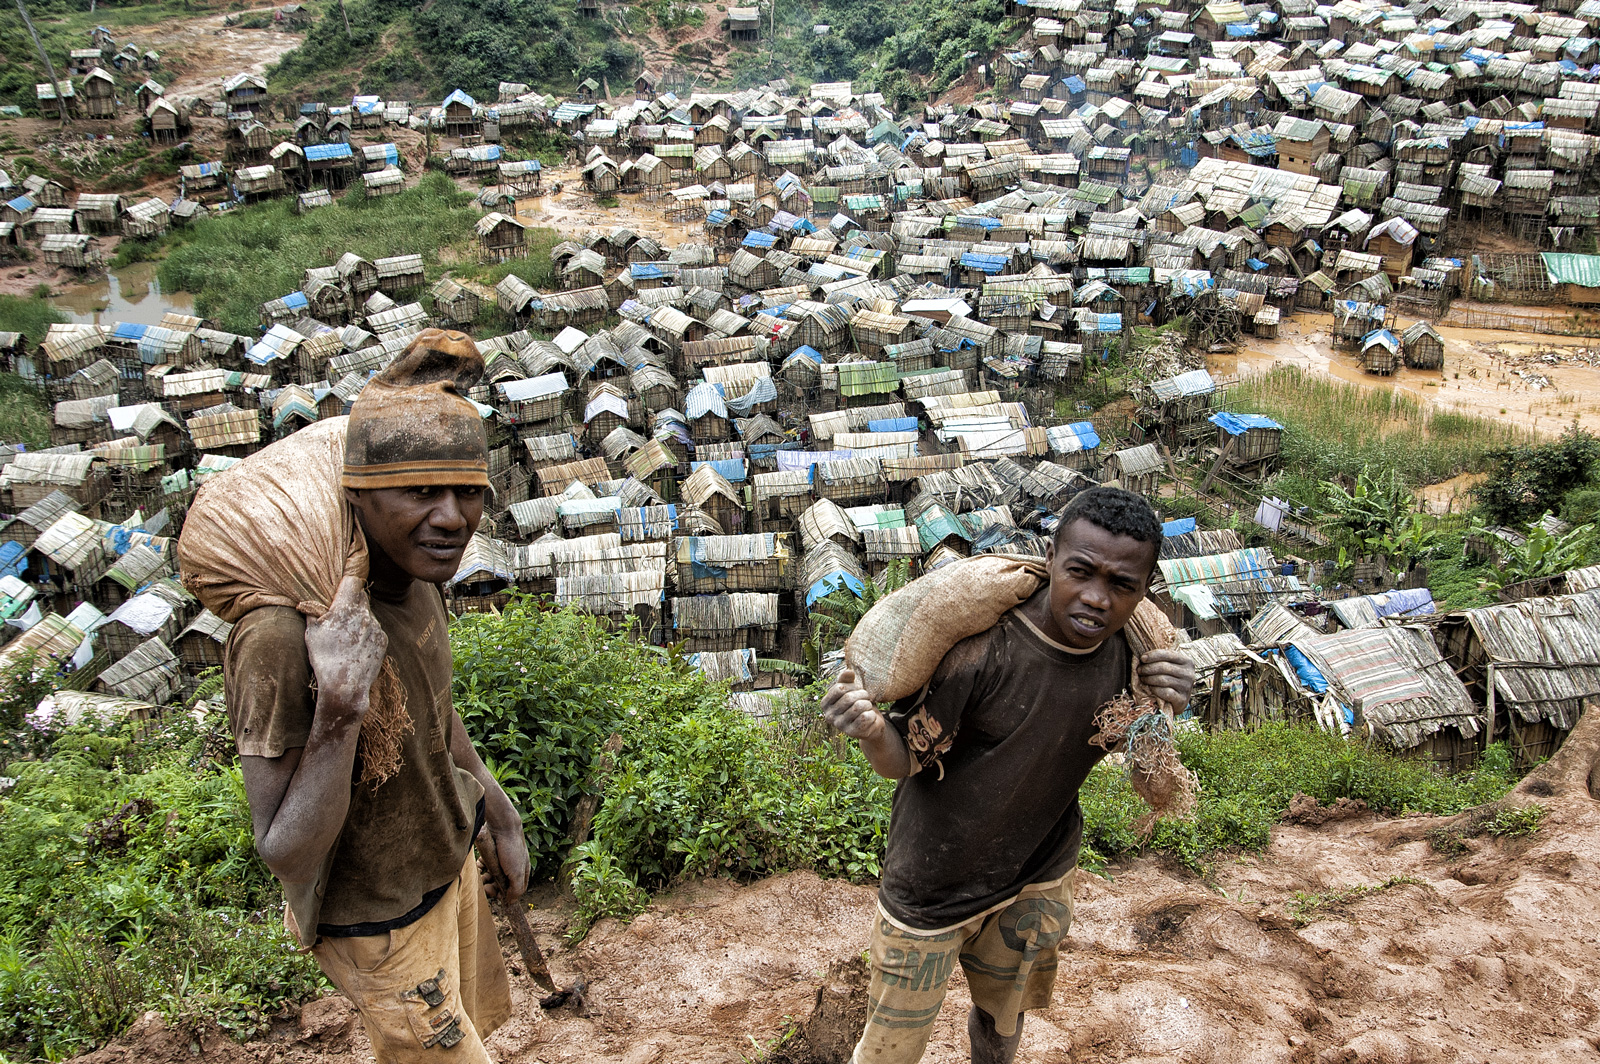 Malagasy miners carrying gem-bearing gravel above Moramanga village, deep in the Madagascar bush. Photo: R.W. Hughes, September 2005.